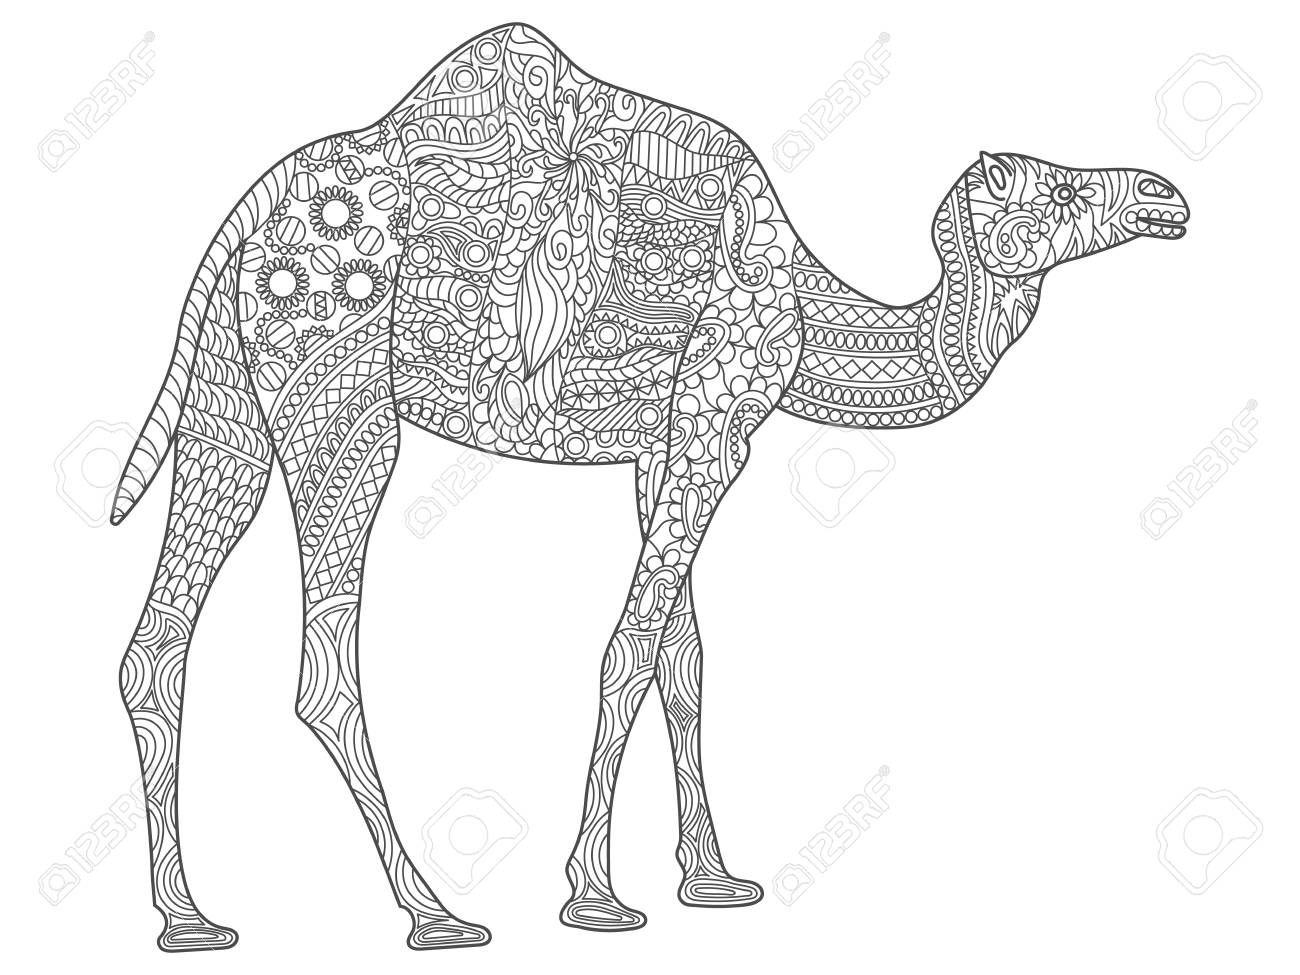 hand drawn coloring pages with camel illustration for adult anti stress coloring books or tattoos wi